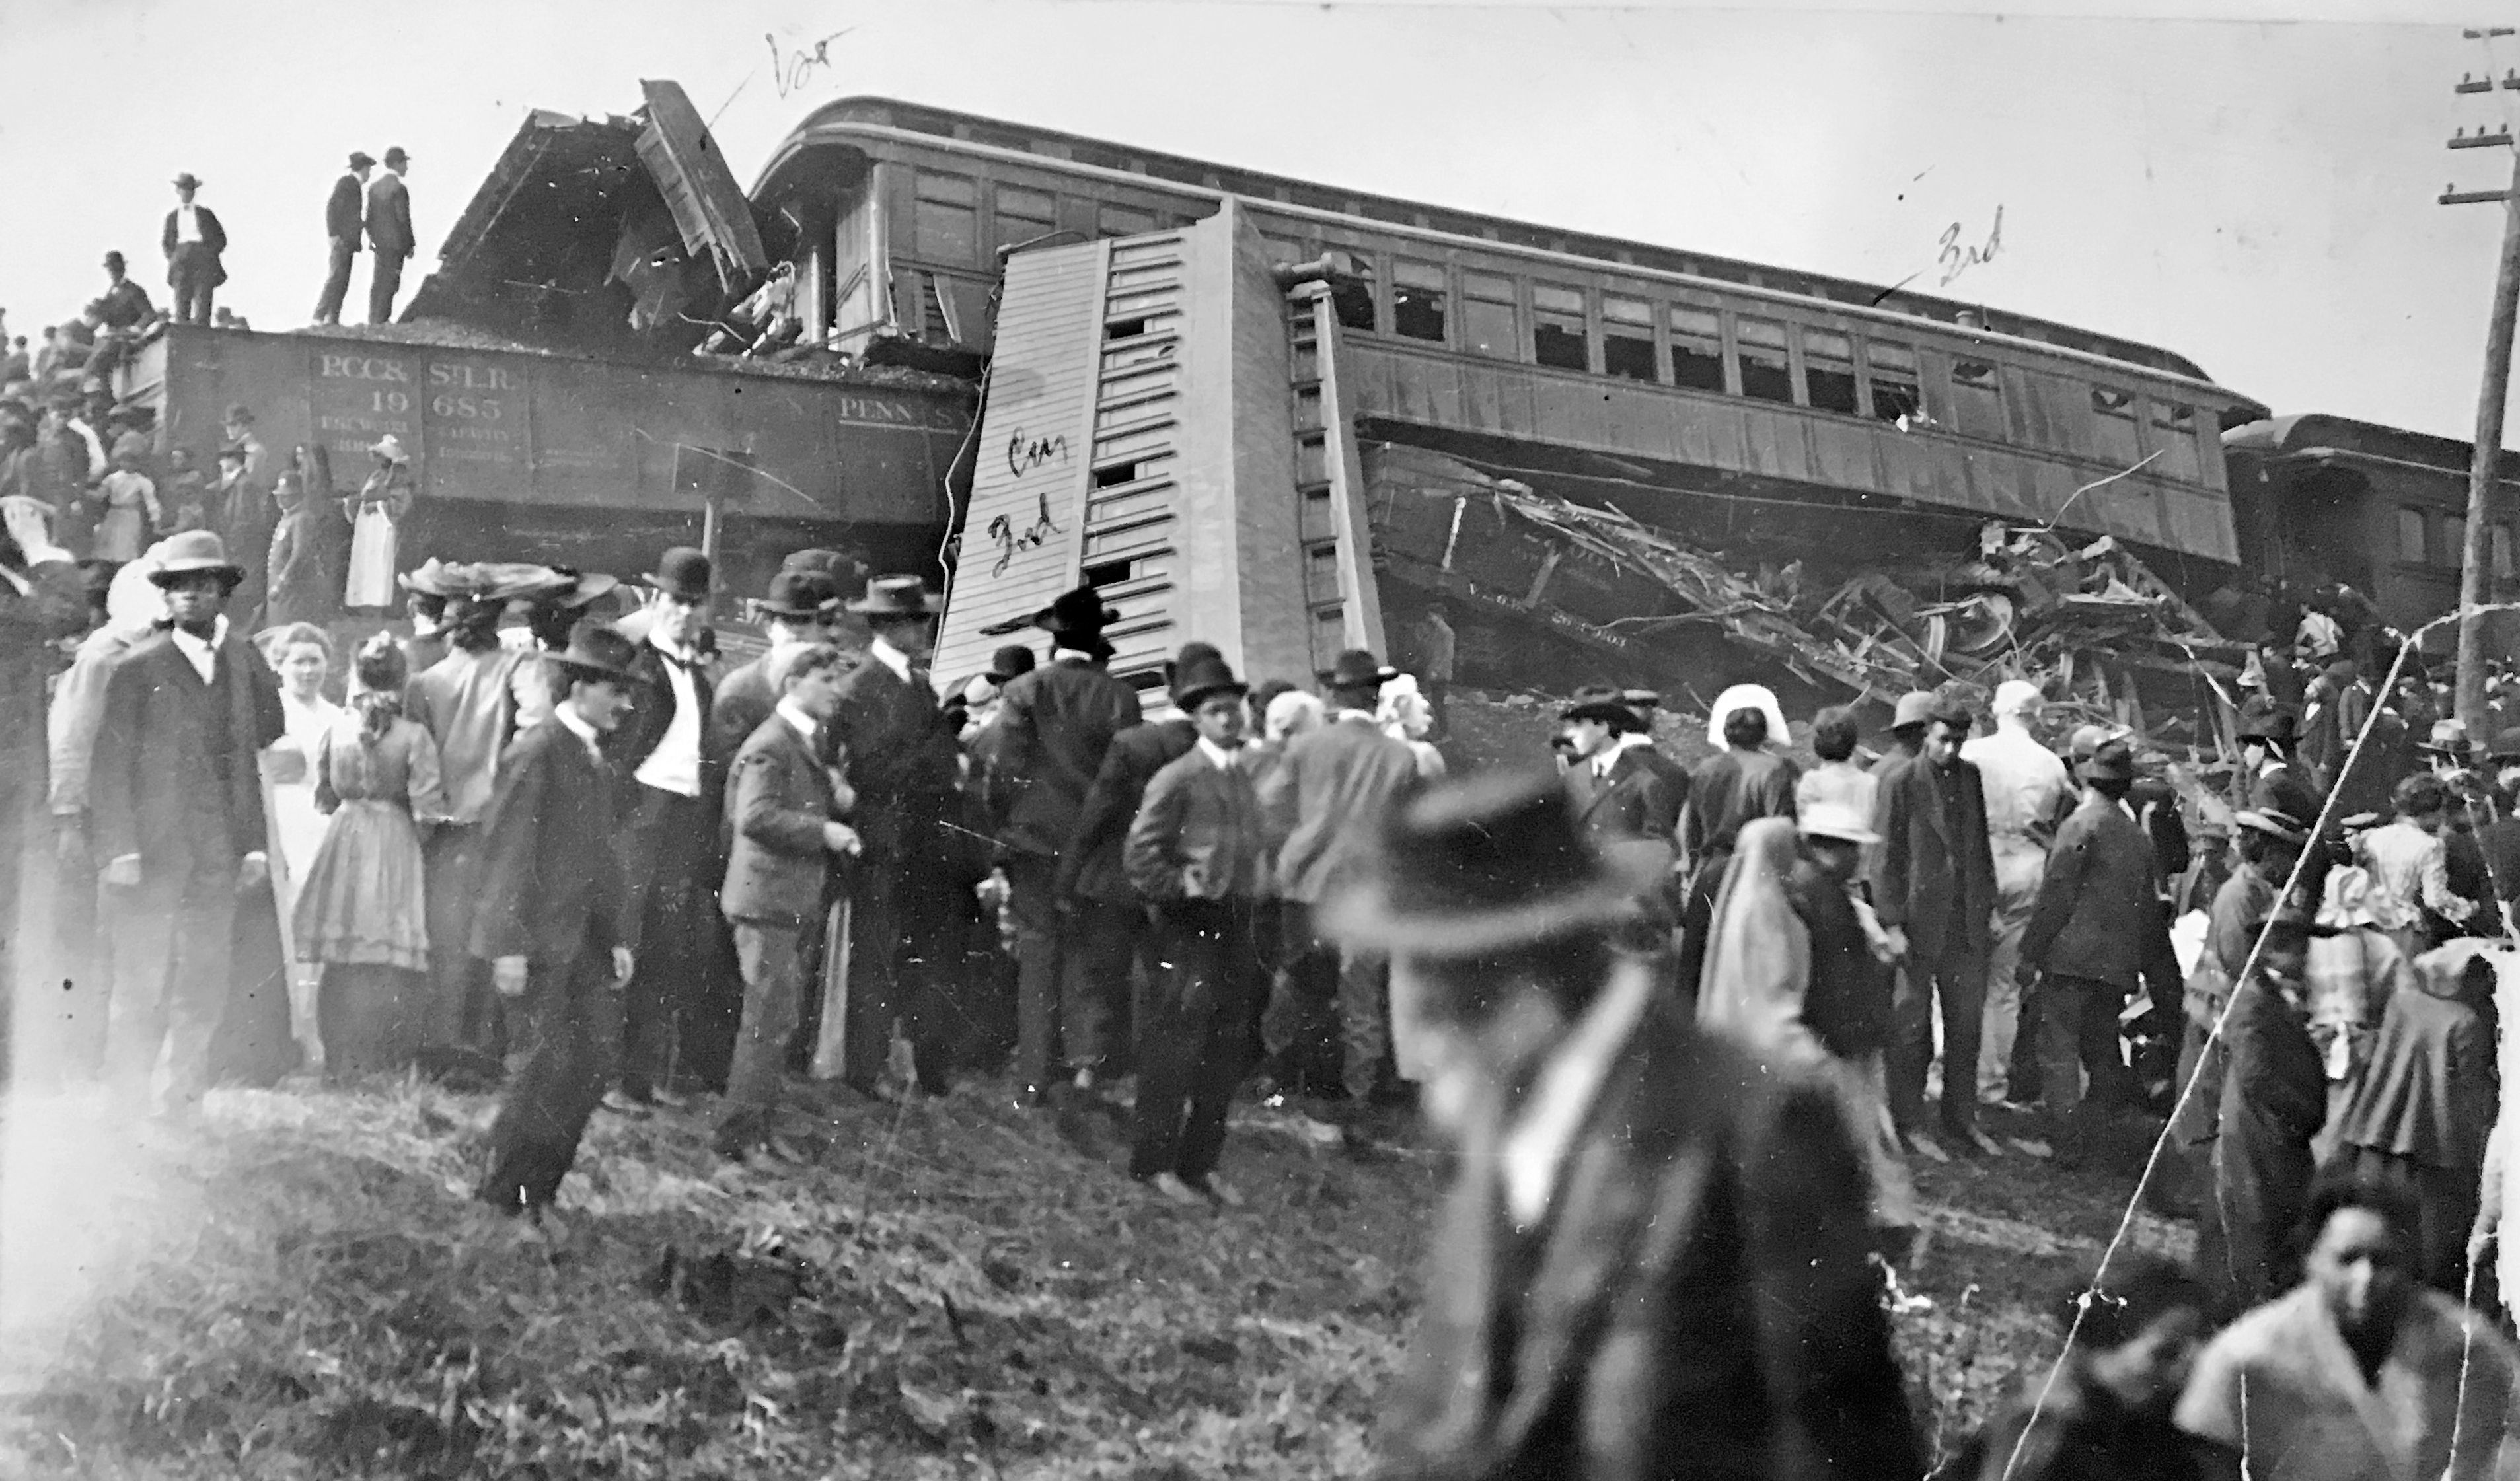 A scene from the wreckage of the train carrying the Purdue University football team in 1903. The team occupied the first car, resulting in the deaths of 13 players as well as an assistant coach and trainer. The second car (right) jumped the track and went down an embankment.